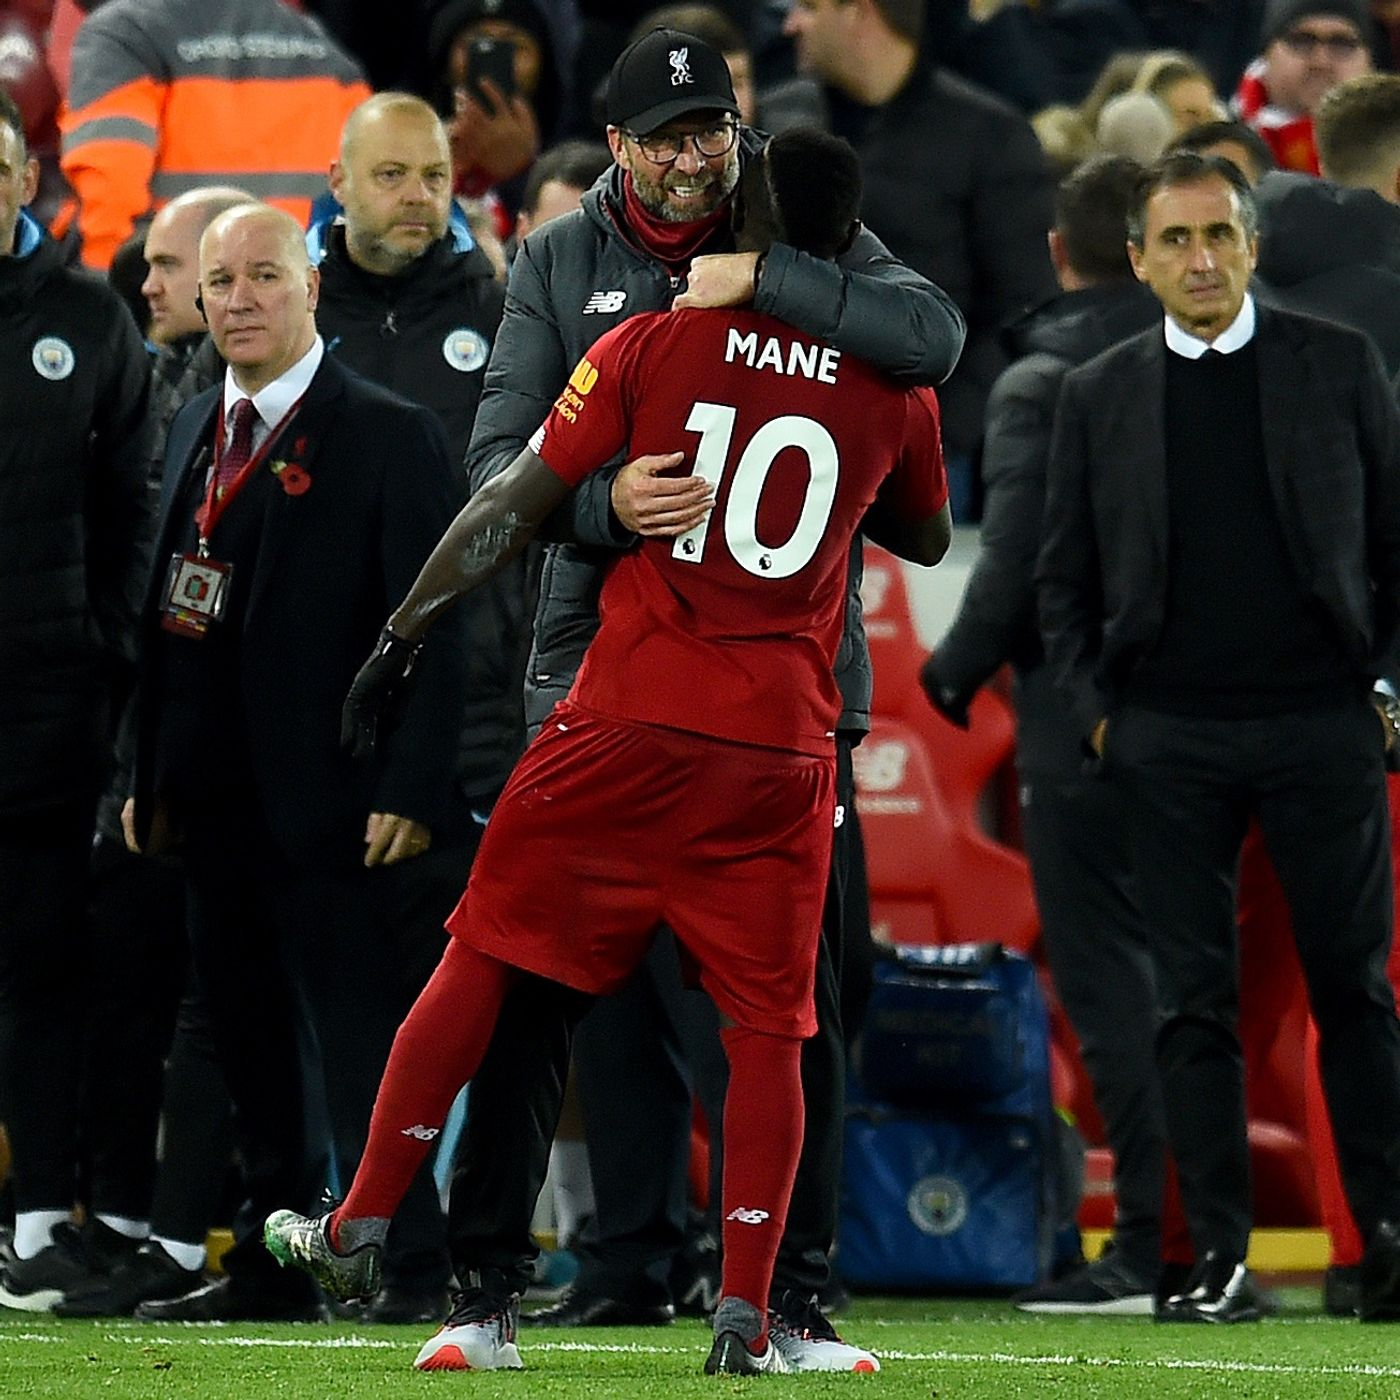 Press Conference: Jurgen Klopp hails Sadio Mane as 'complete player' as Liverpool boss looks ahead to Brighton